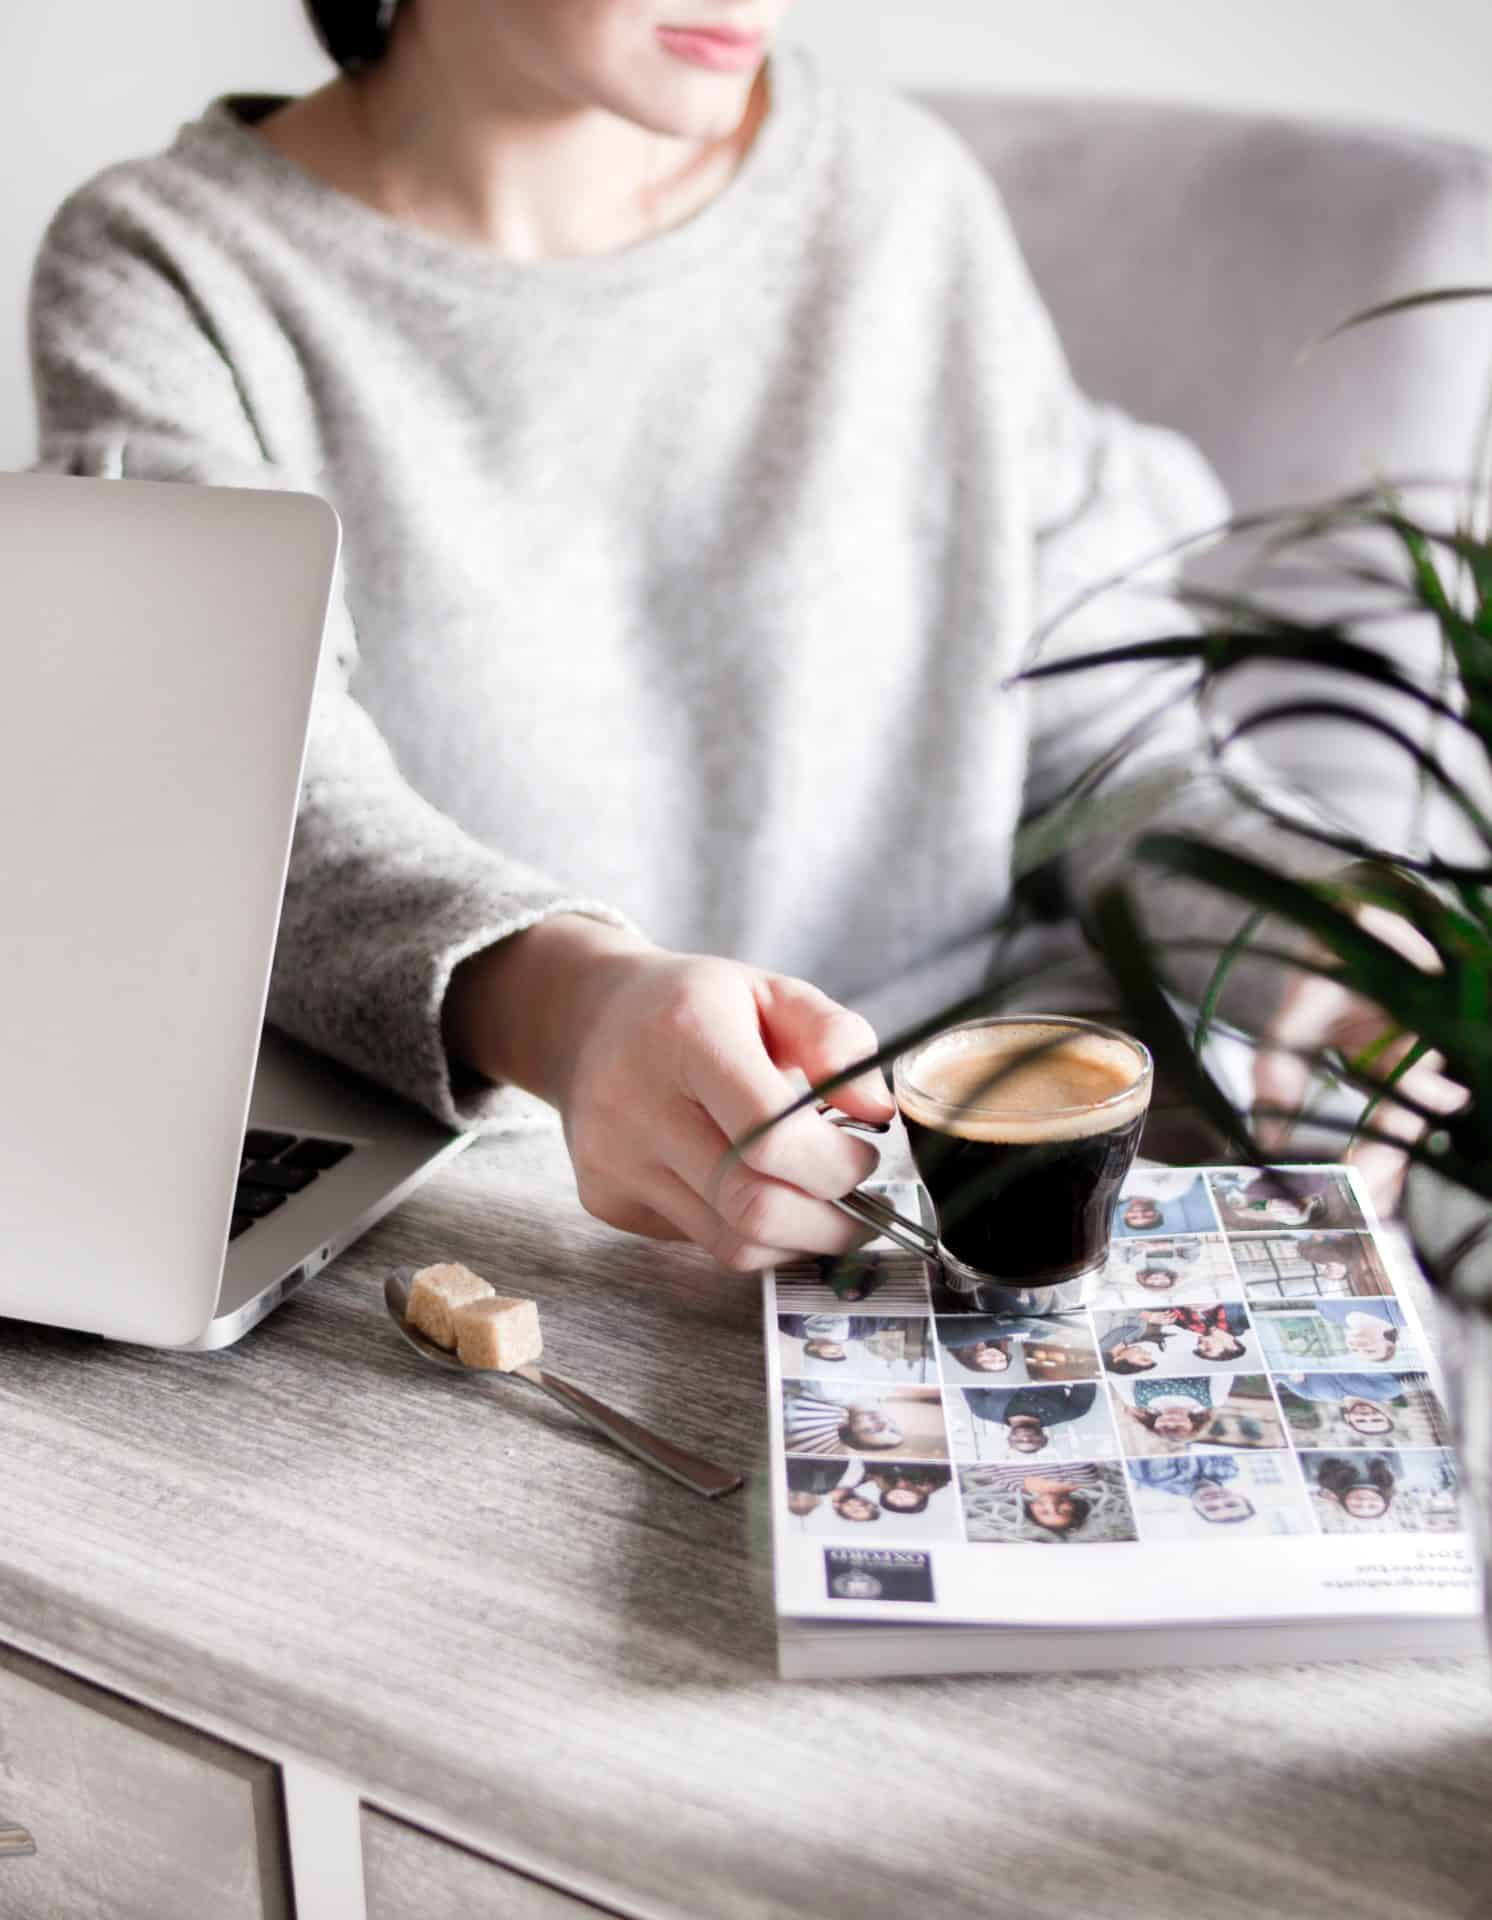 Tips For Working Better From Home